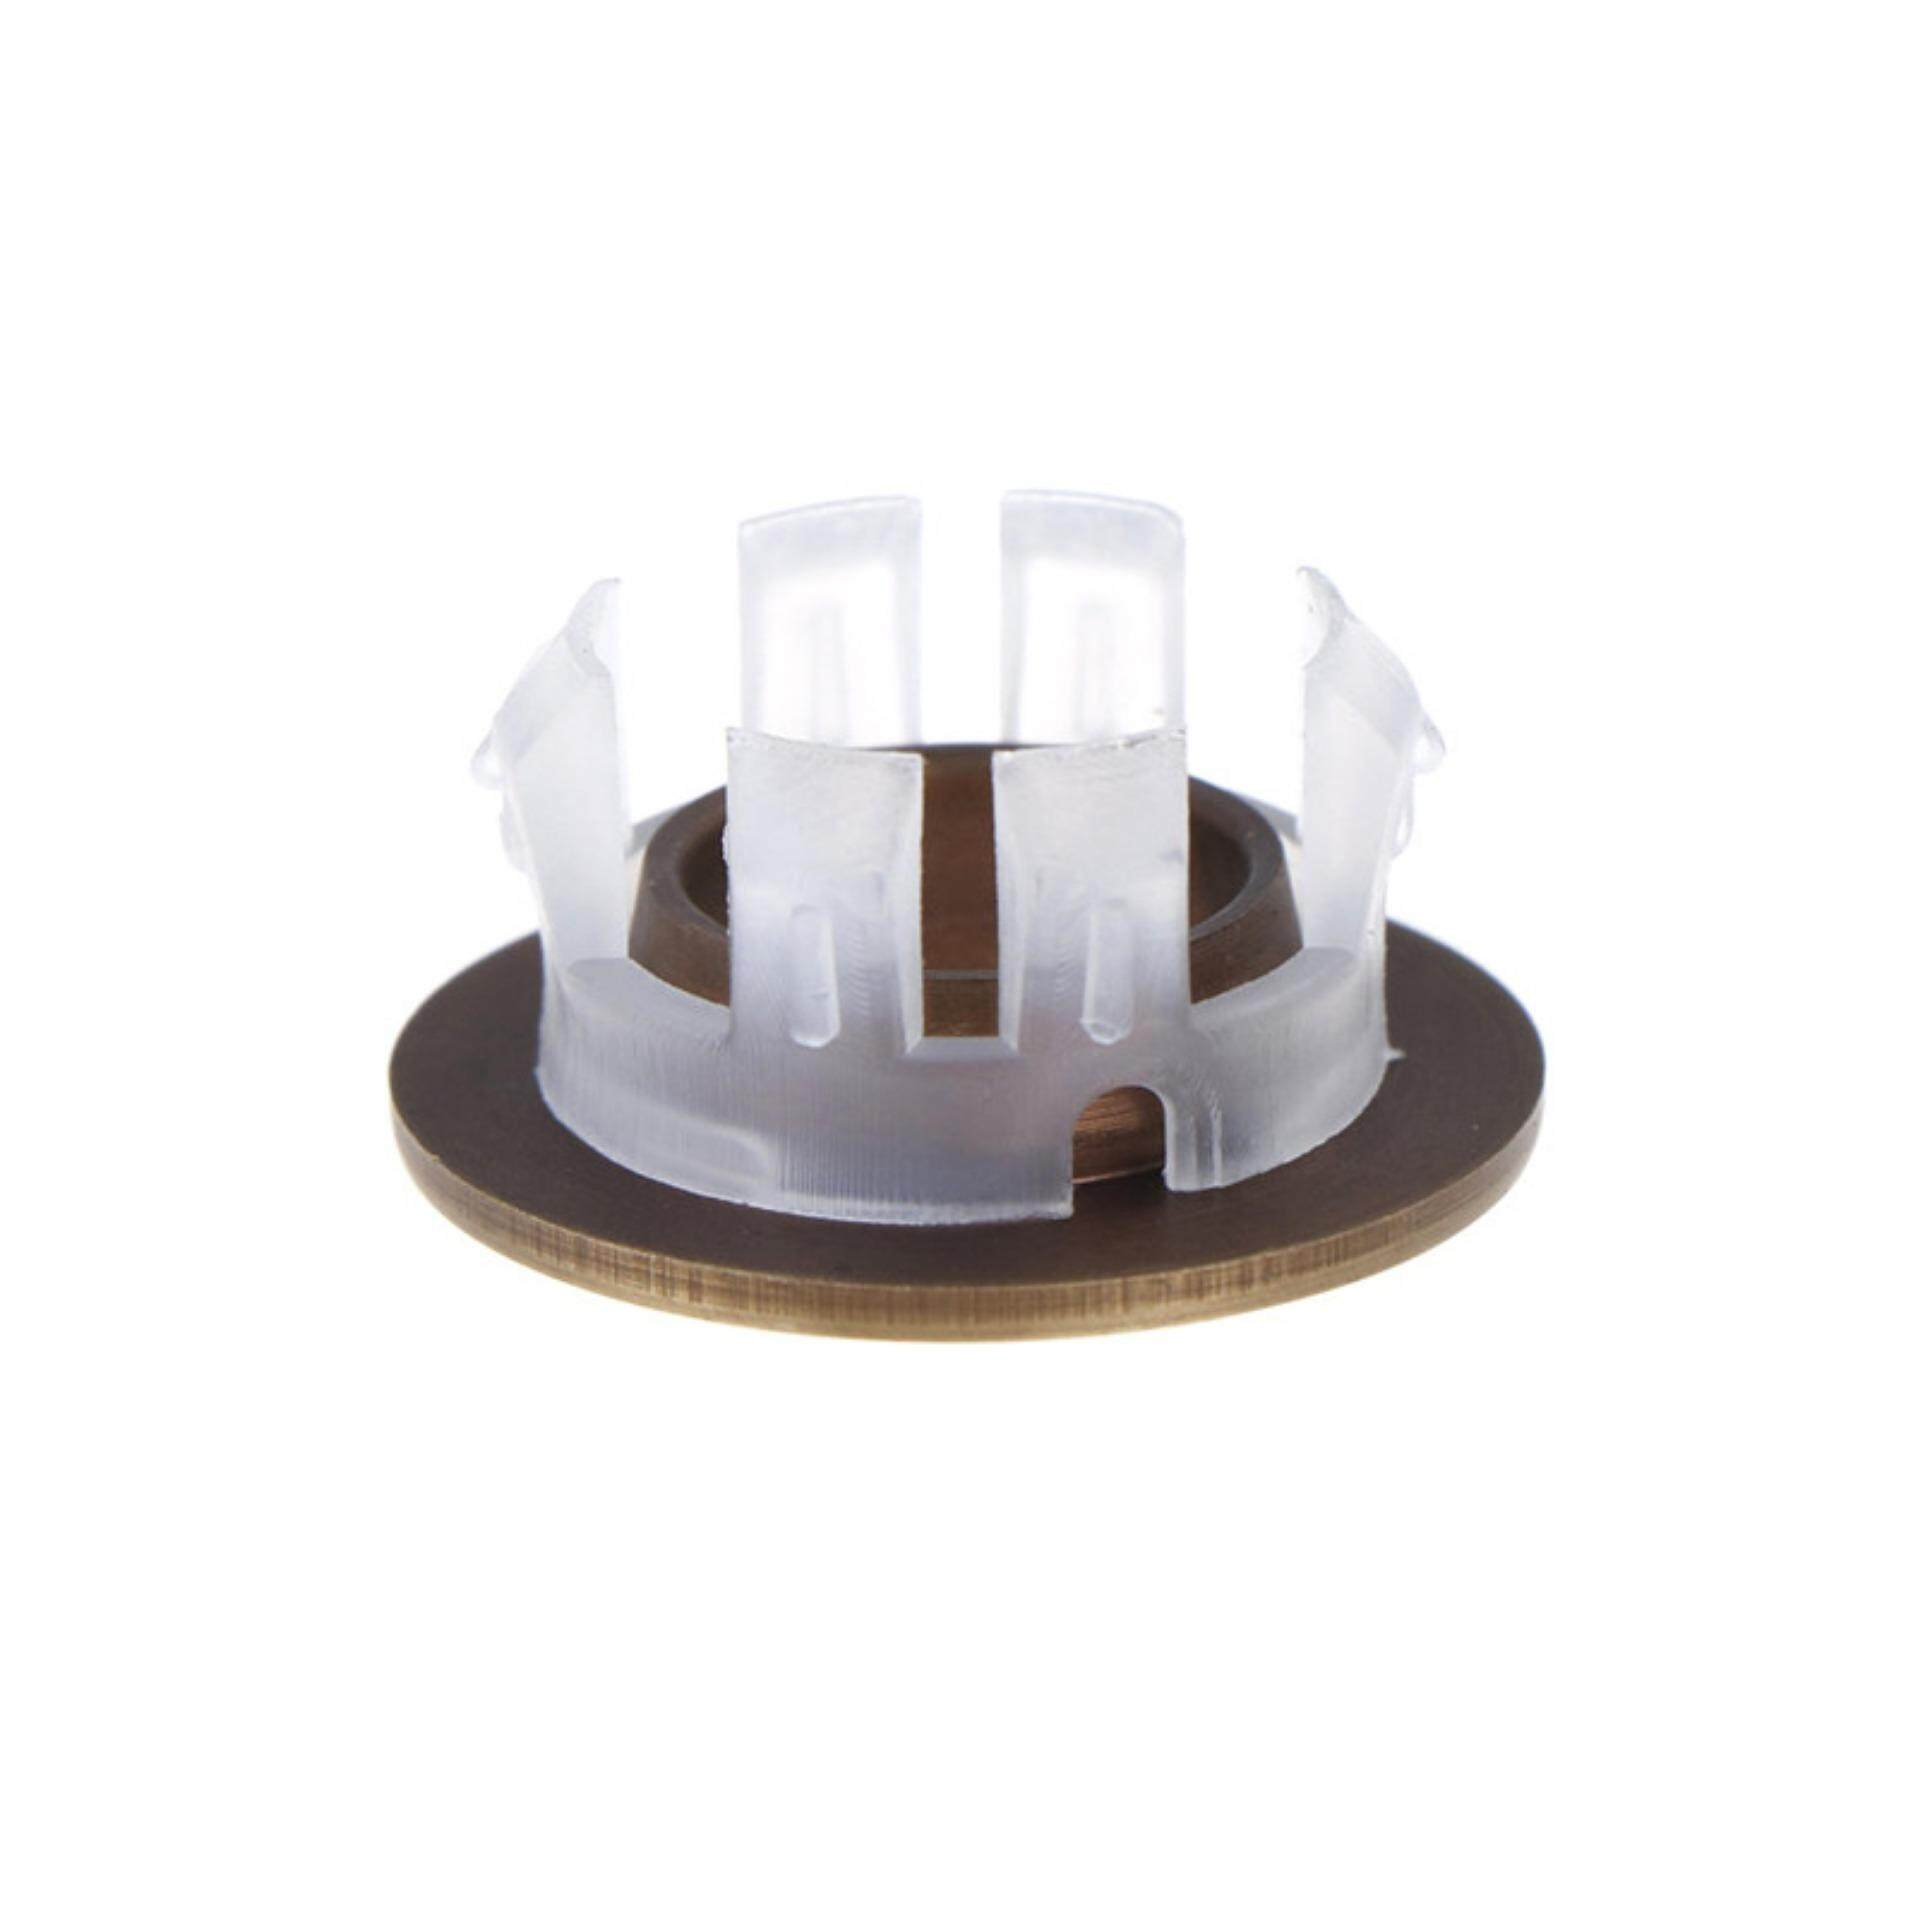 ... Bathroom Basin / Sink Overflow Cover/Brass Six-foot ring Bathroom Product A2 -